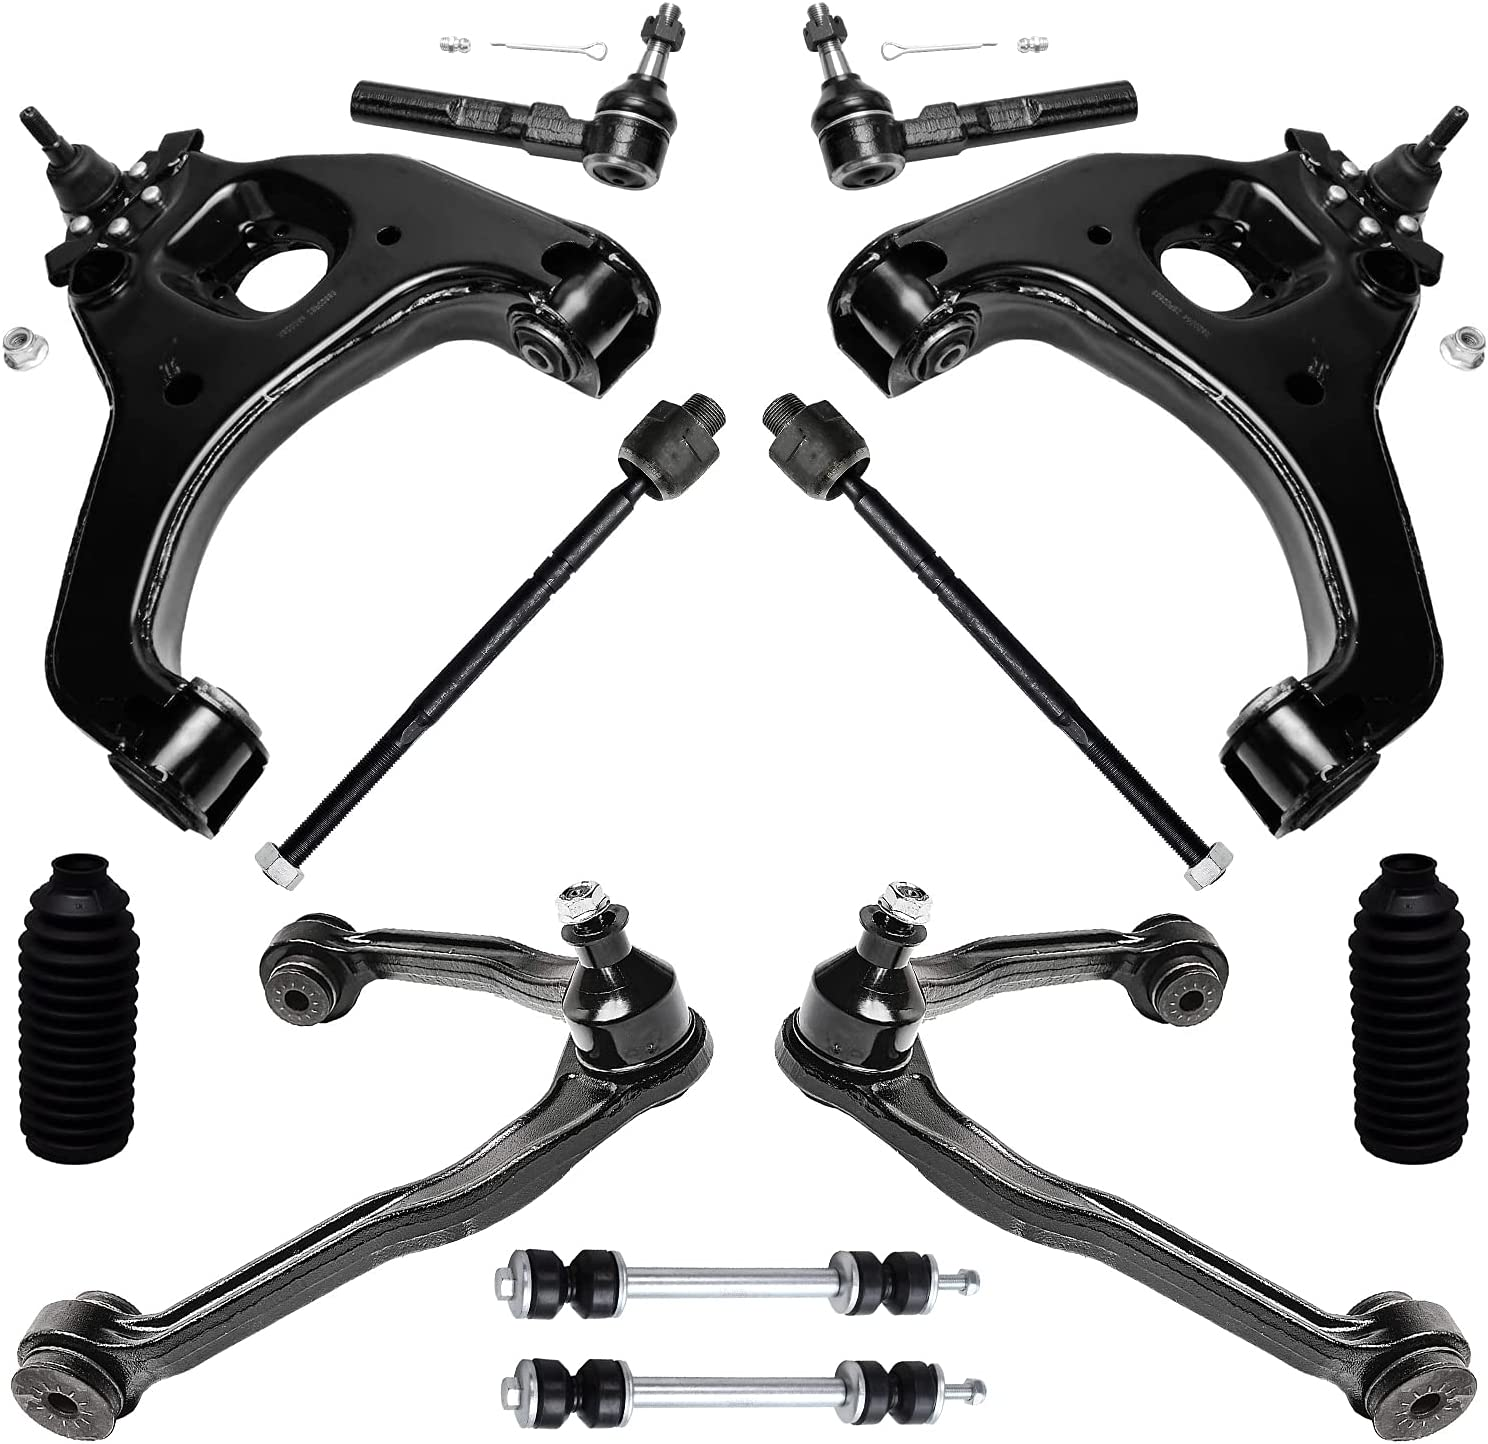 Detroit Axle - mart 2WD Front Max 44% OFF Control Arms + Rods Joints w Ball +Tie